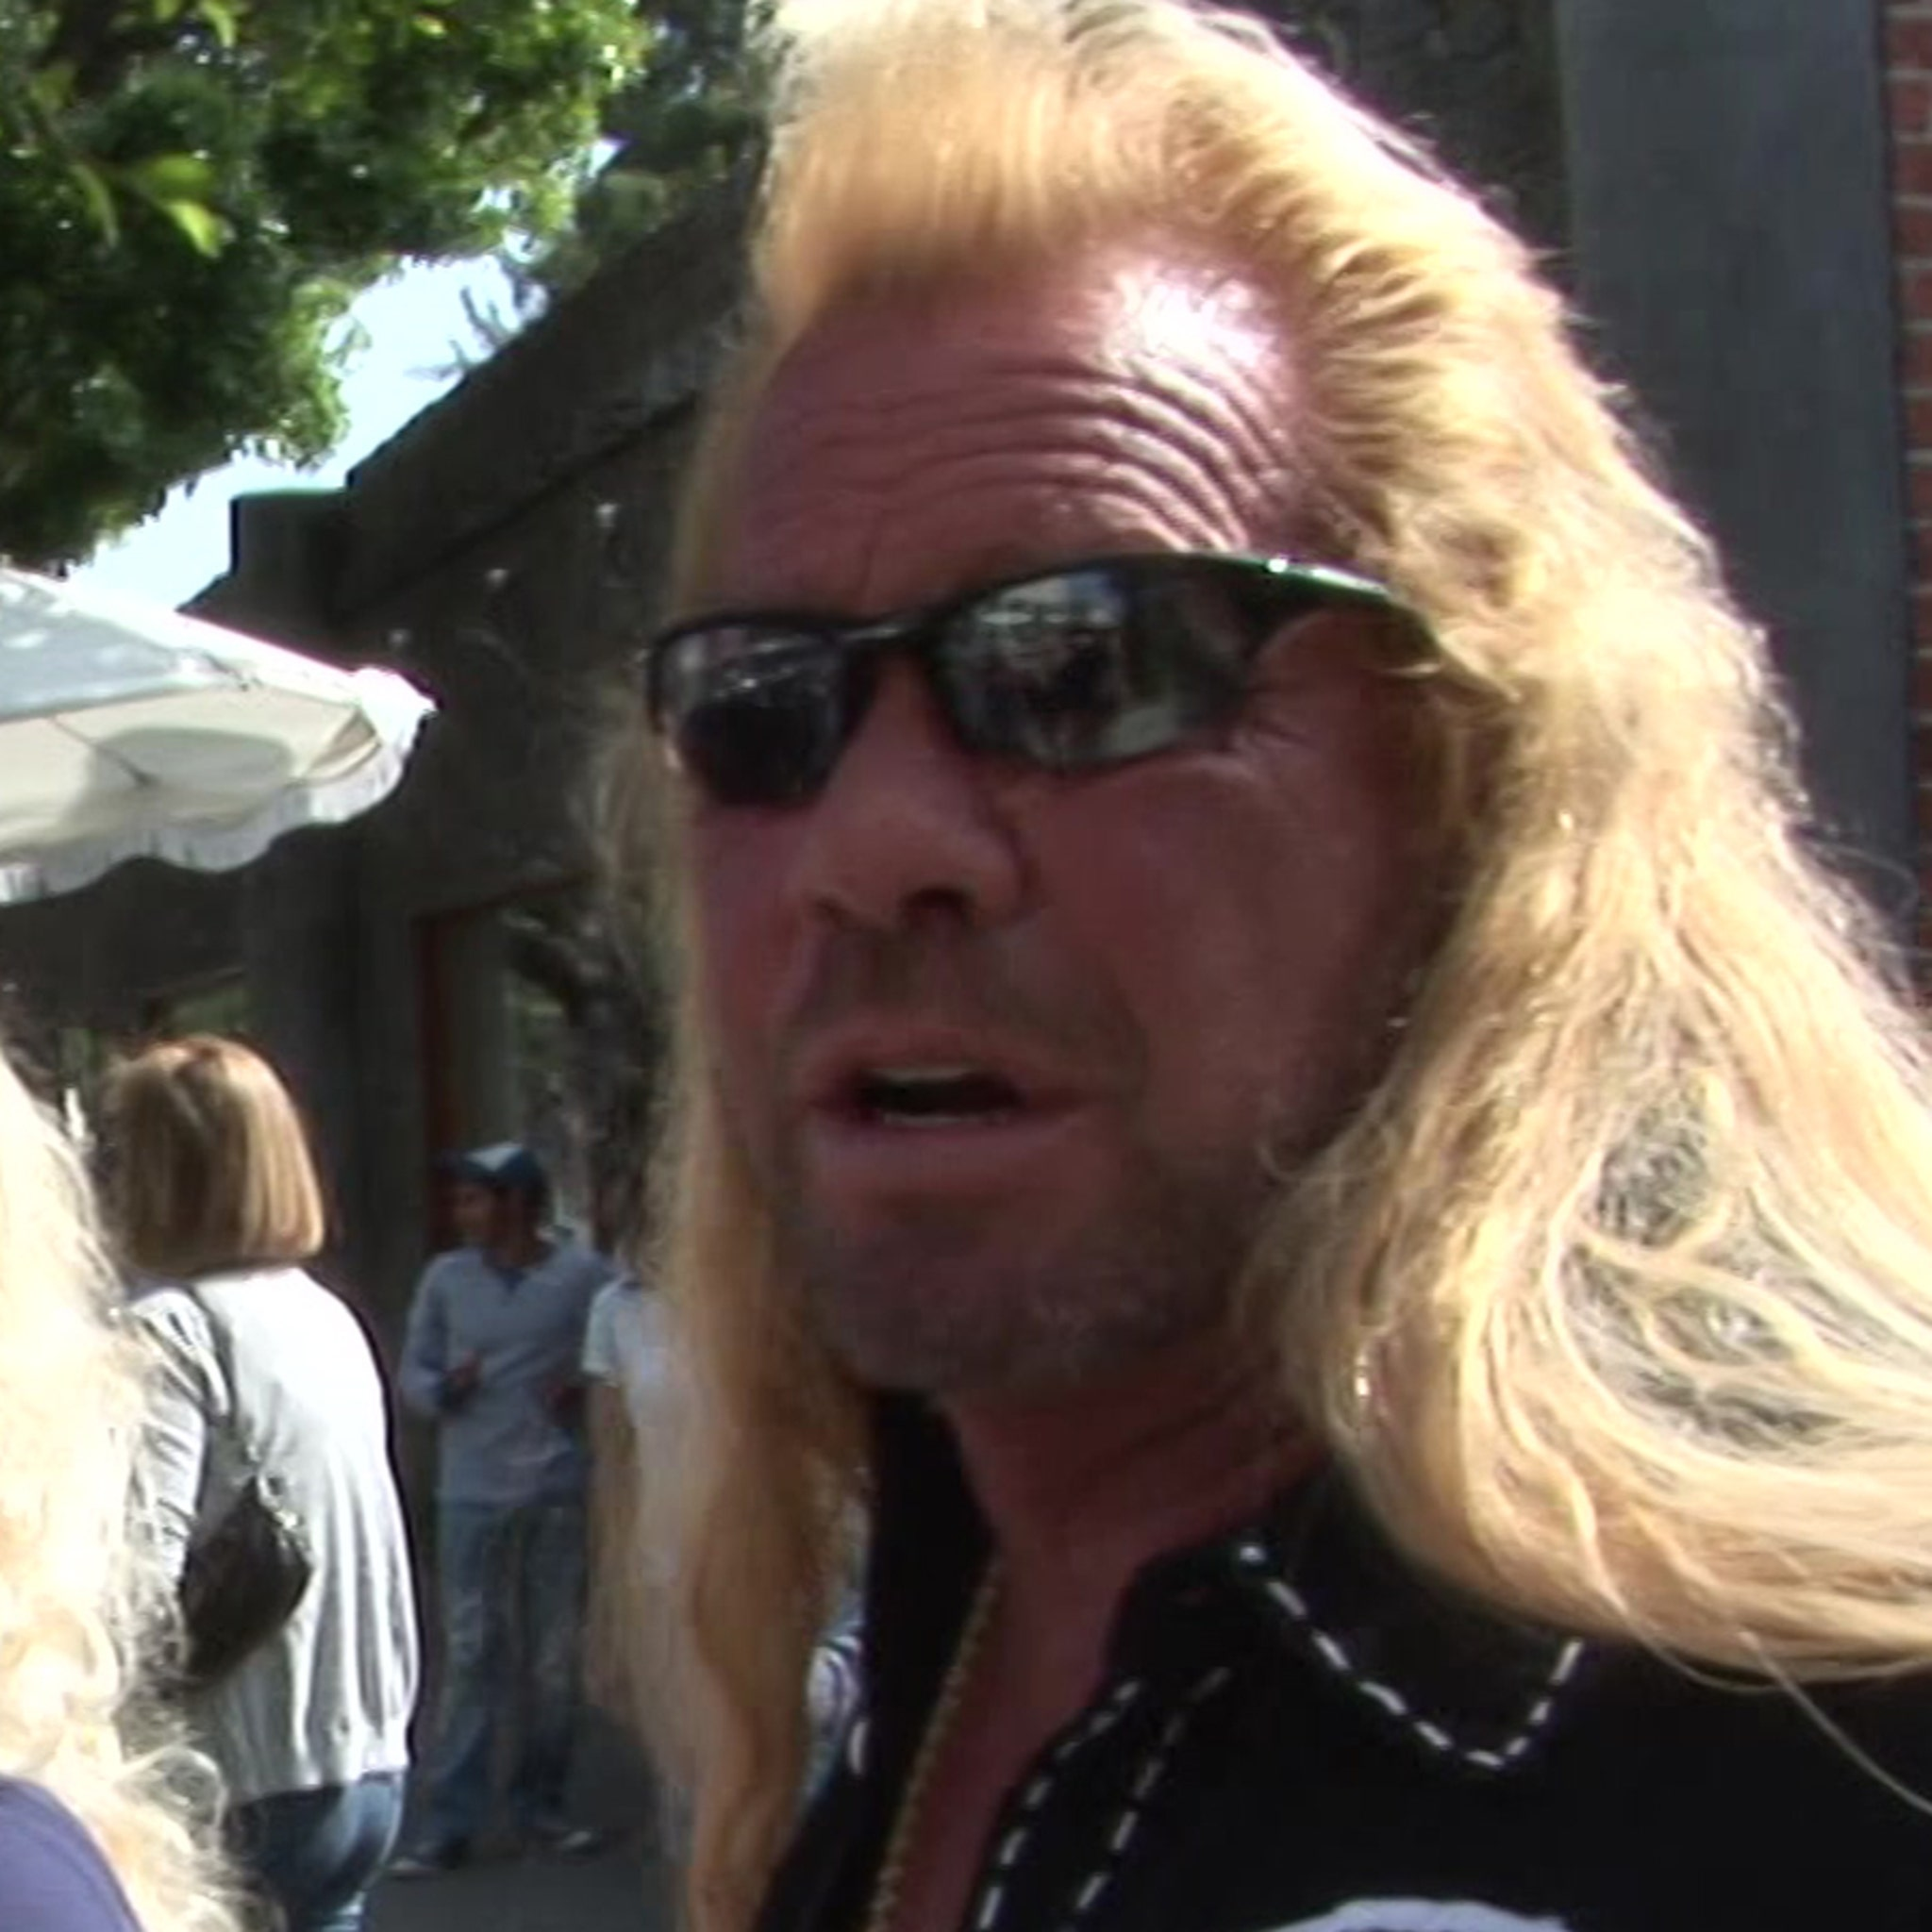 Dog the Bounty Hunter's Facing Possible Lifestyle Changes After Scare